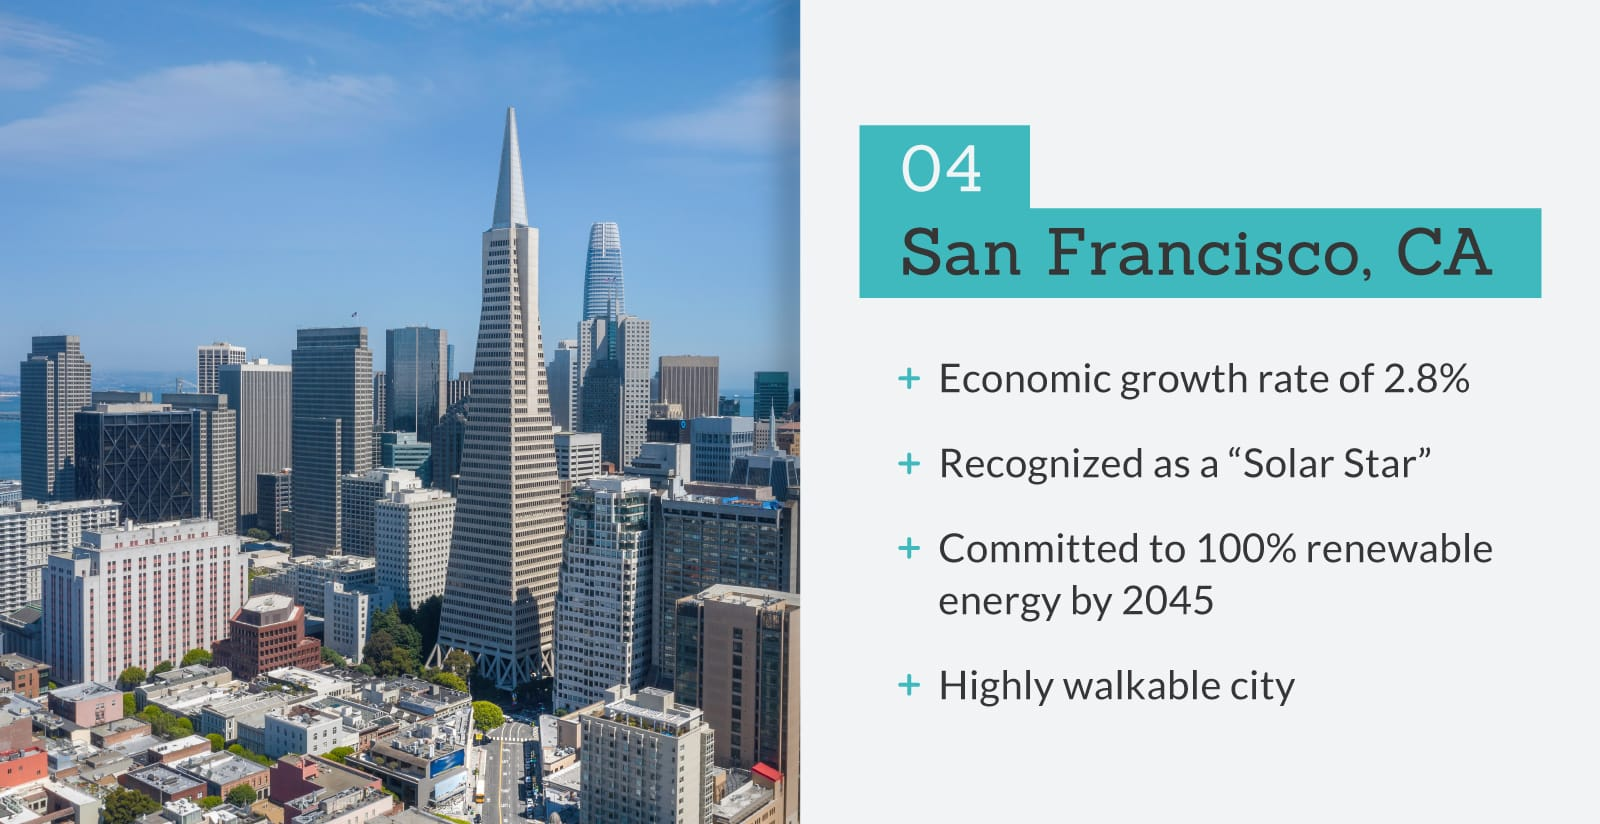 picture of San Fransisco, CA with stats.